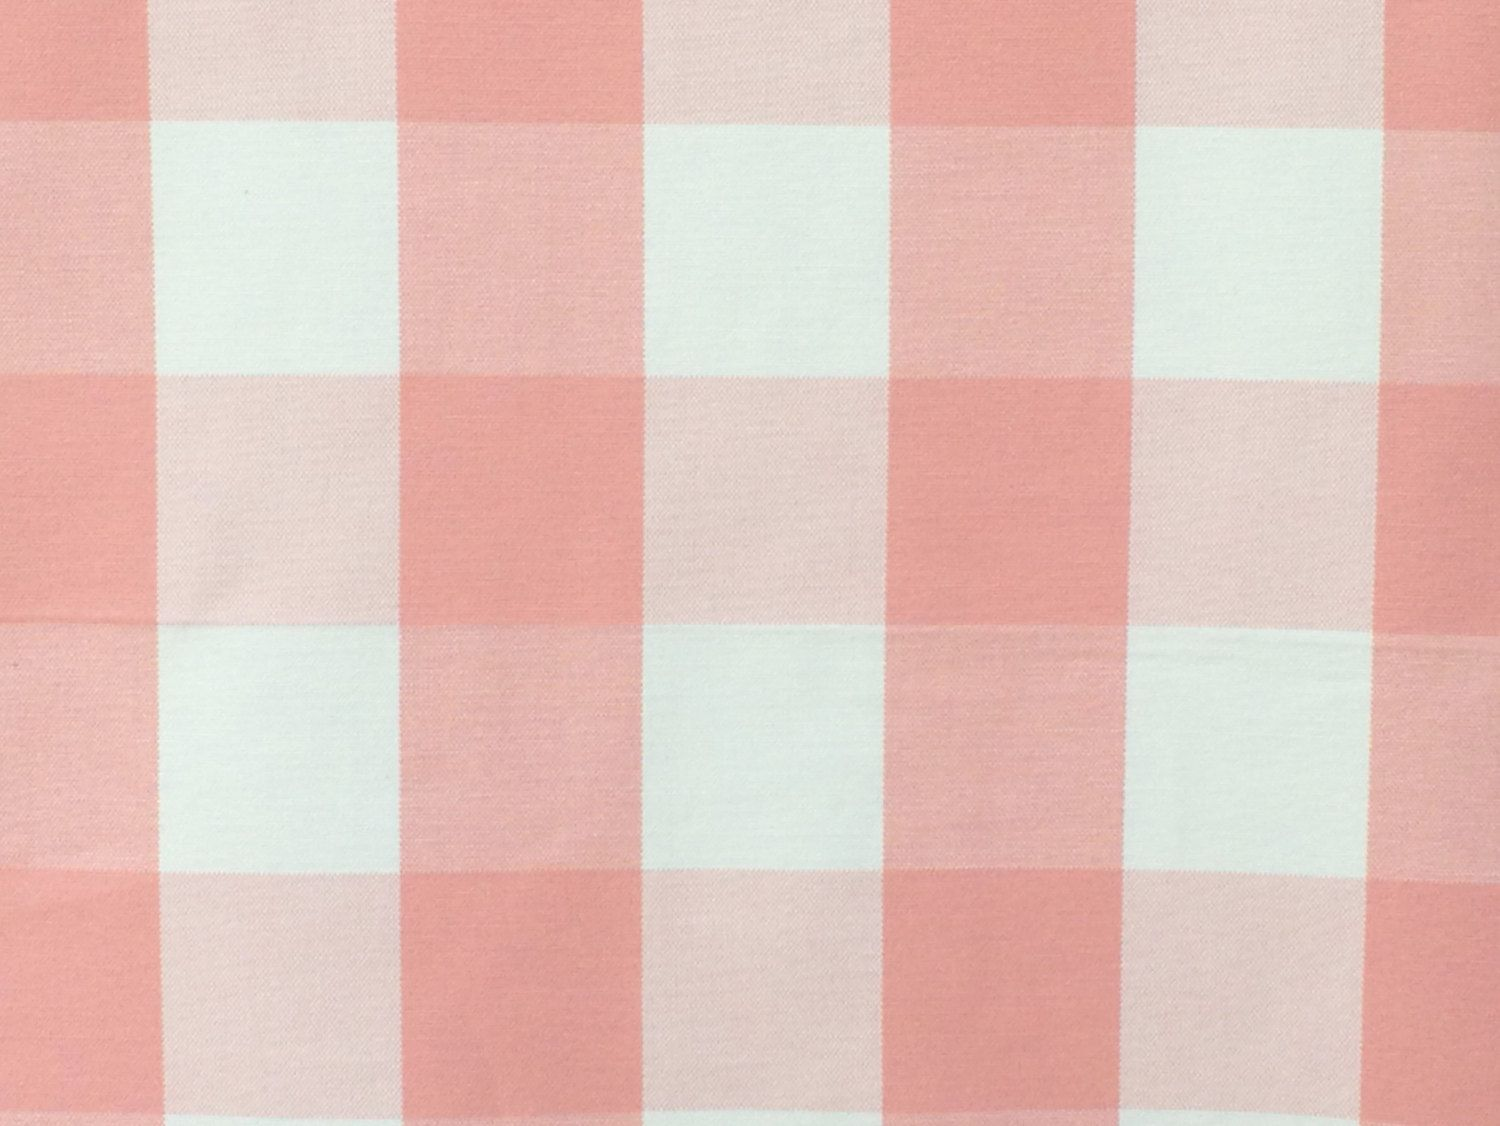 Peach And Ivory Gingham Checks Cotton Fabric By The Yard Upholstery Drapery Shower Curtain Wholesale FabricMart